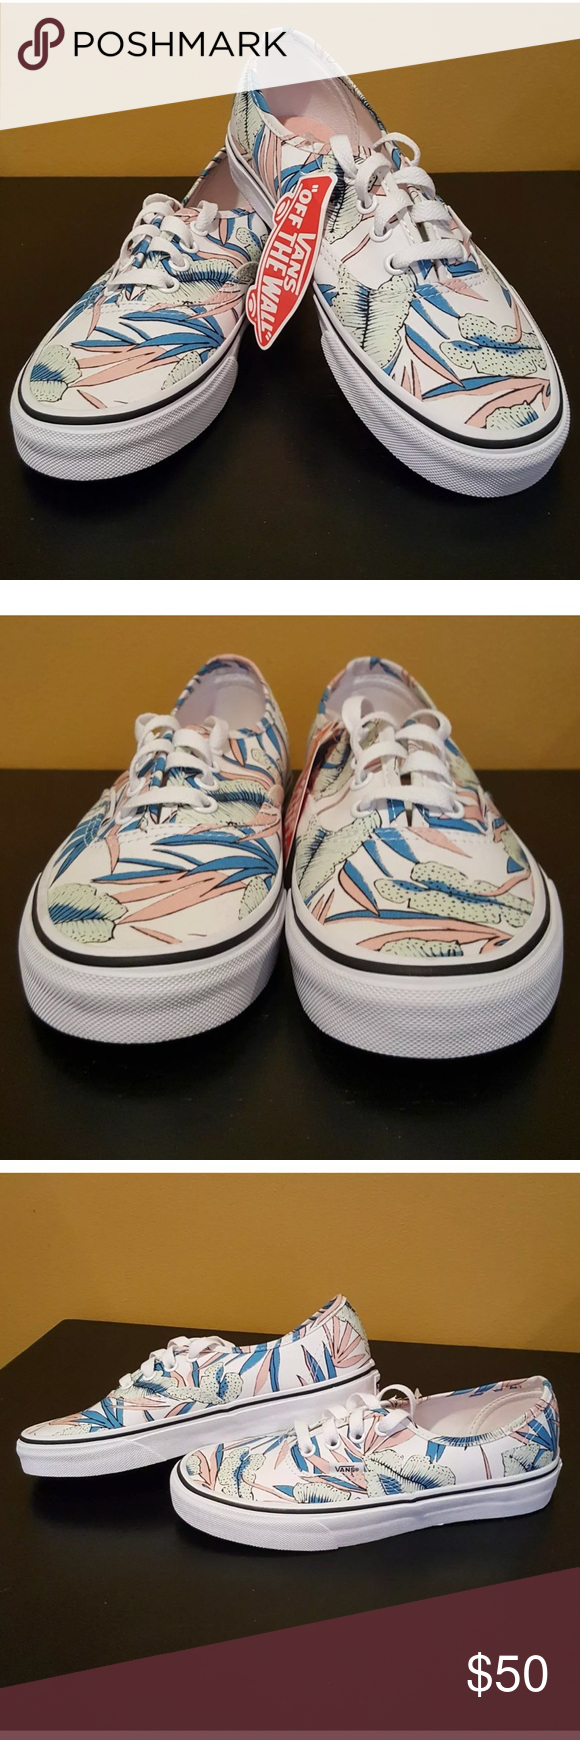 3a0dbd6aea Vans tropical Lo Pro Hawaiian summer pink sneakers Vans new with tags Low  Pro tropical leaf print in women s size 6.5 men s 5. Comes from a smoke  free and ...